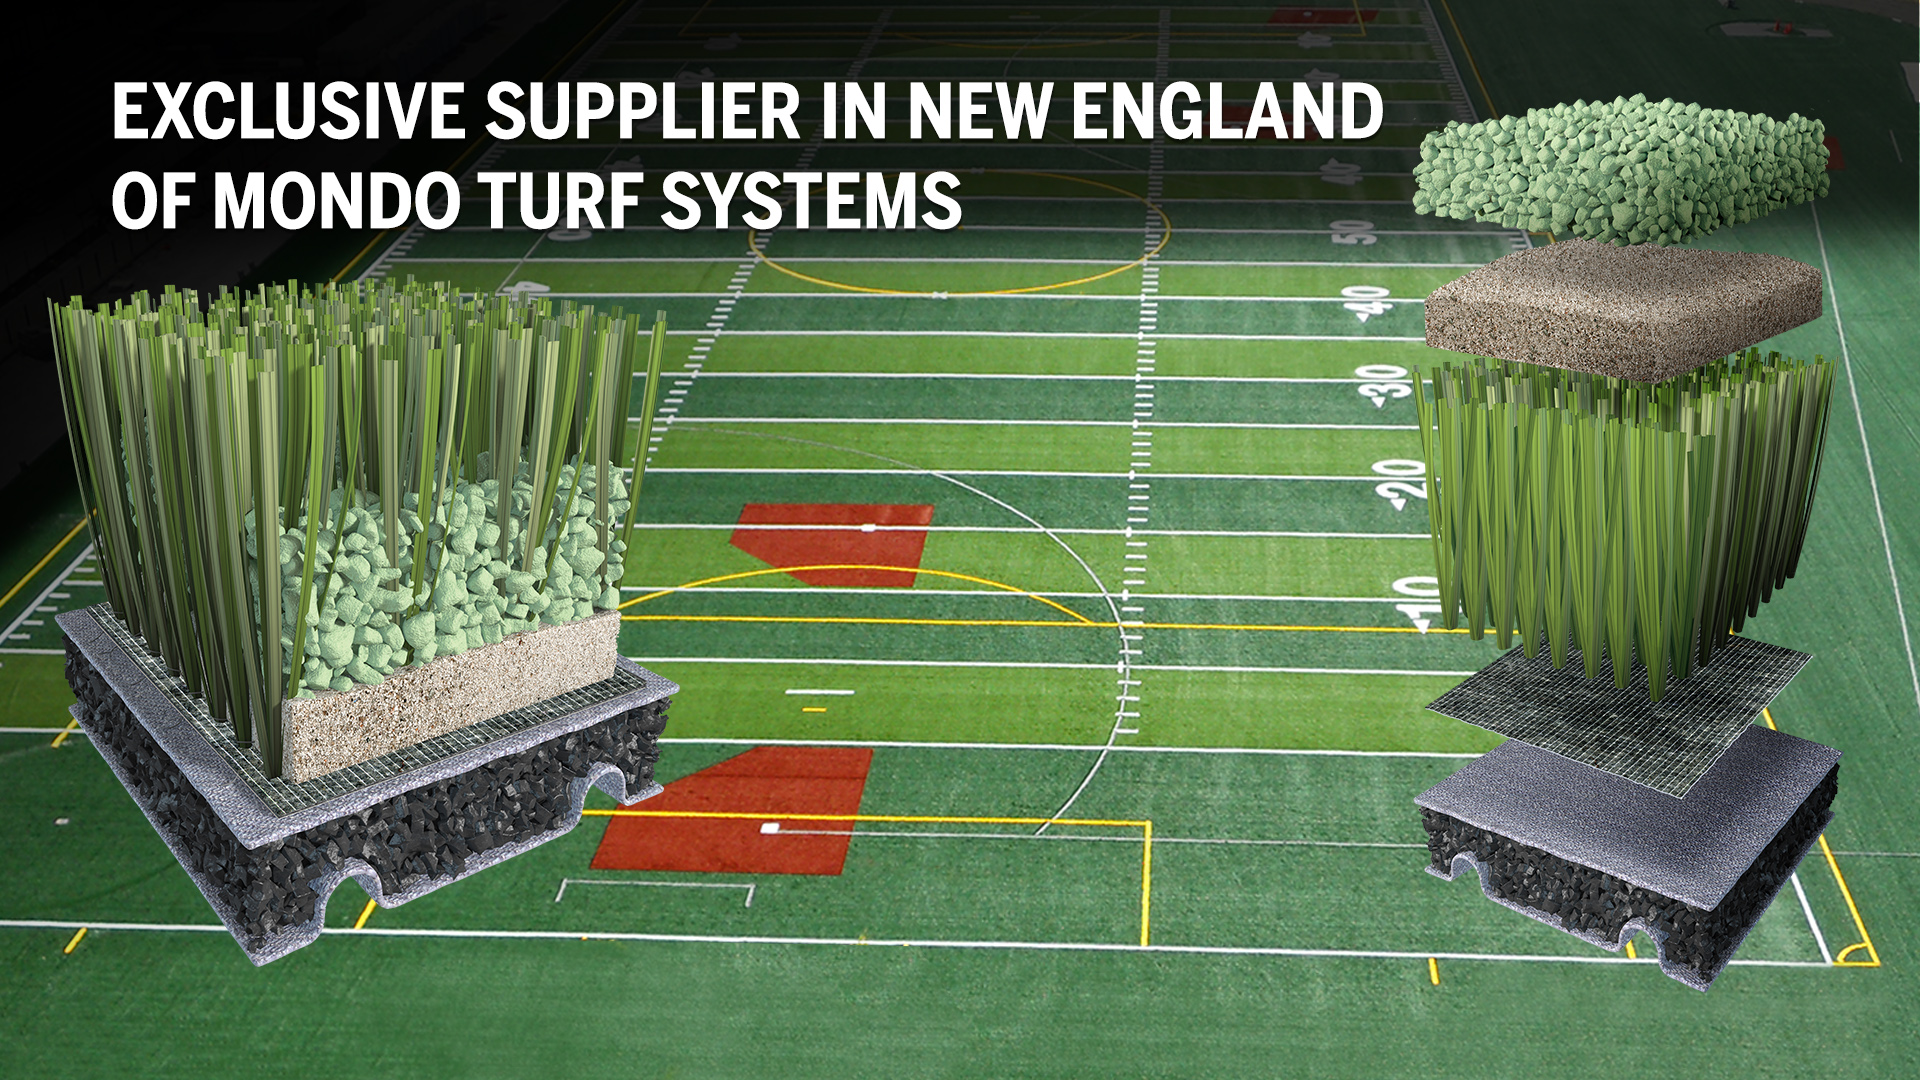 Kiefer Northeast - Mondo Turf Supplier for New England